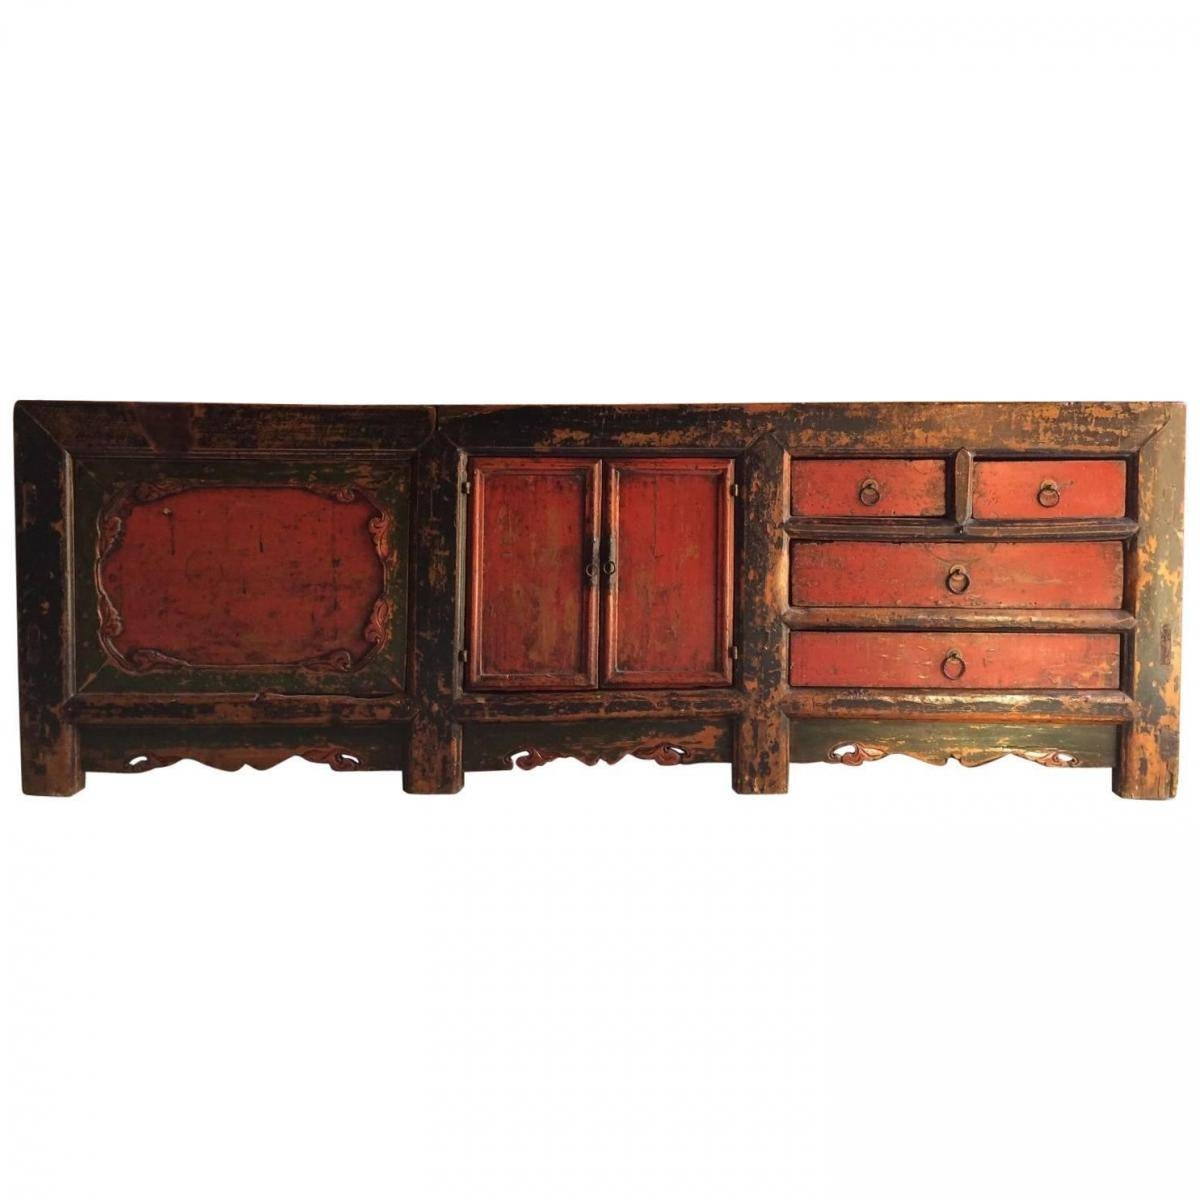 Antique Chinese Grain Store Sideboard, 1780S For Sale At Pamono Inside Chinese Sideboards (View 3 of 30)